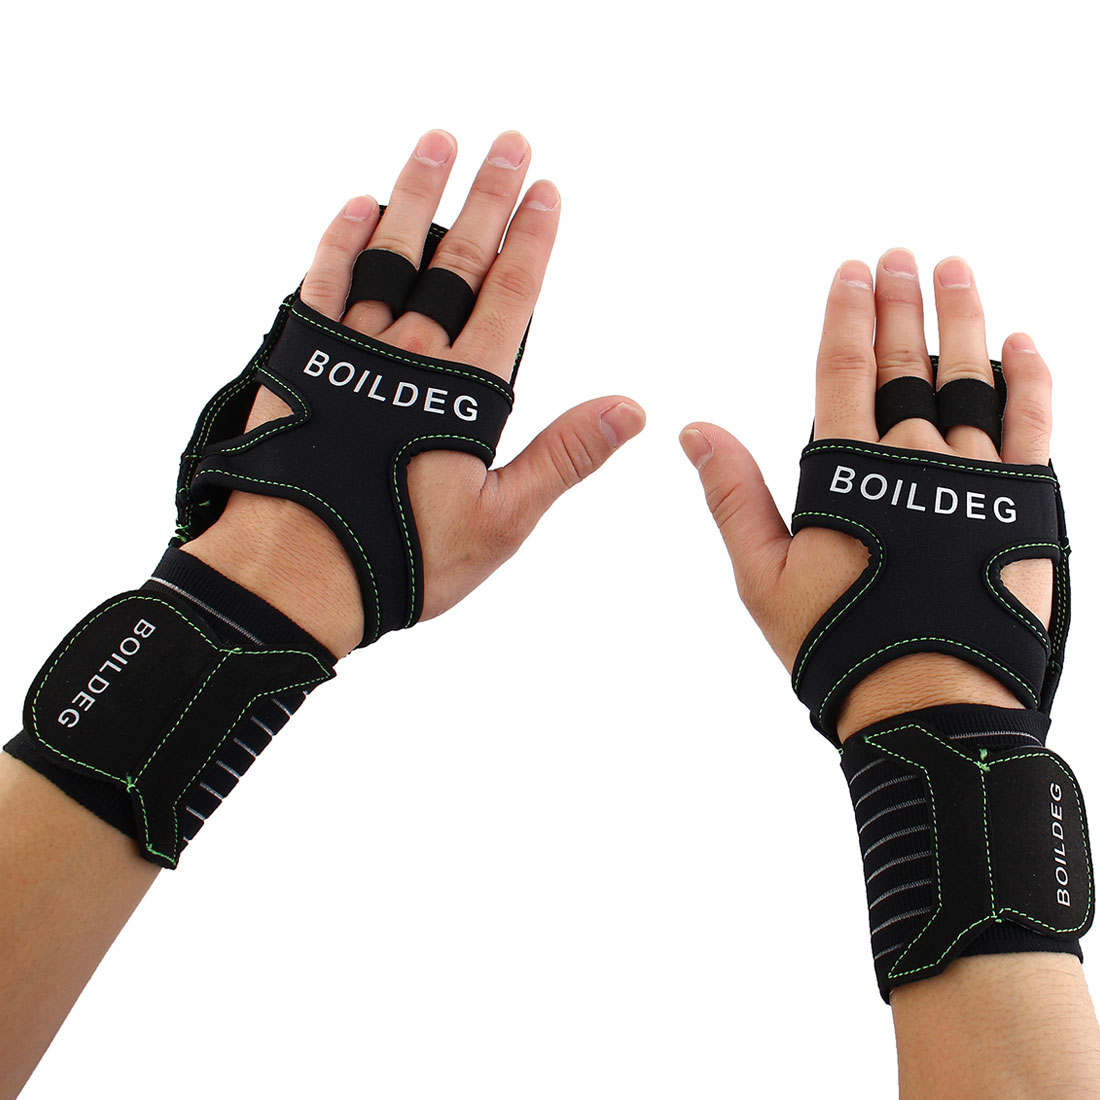 BOILDEG Authorized Unisex Sports Training Workout Mittens Wear-resisting Palm Support Fitness Gloves Green M Pair